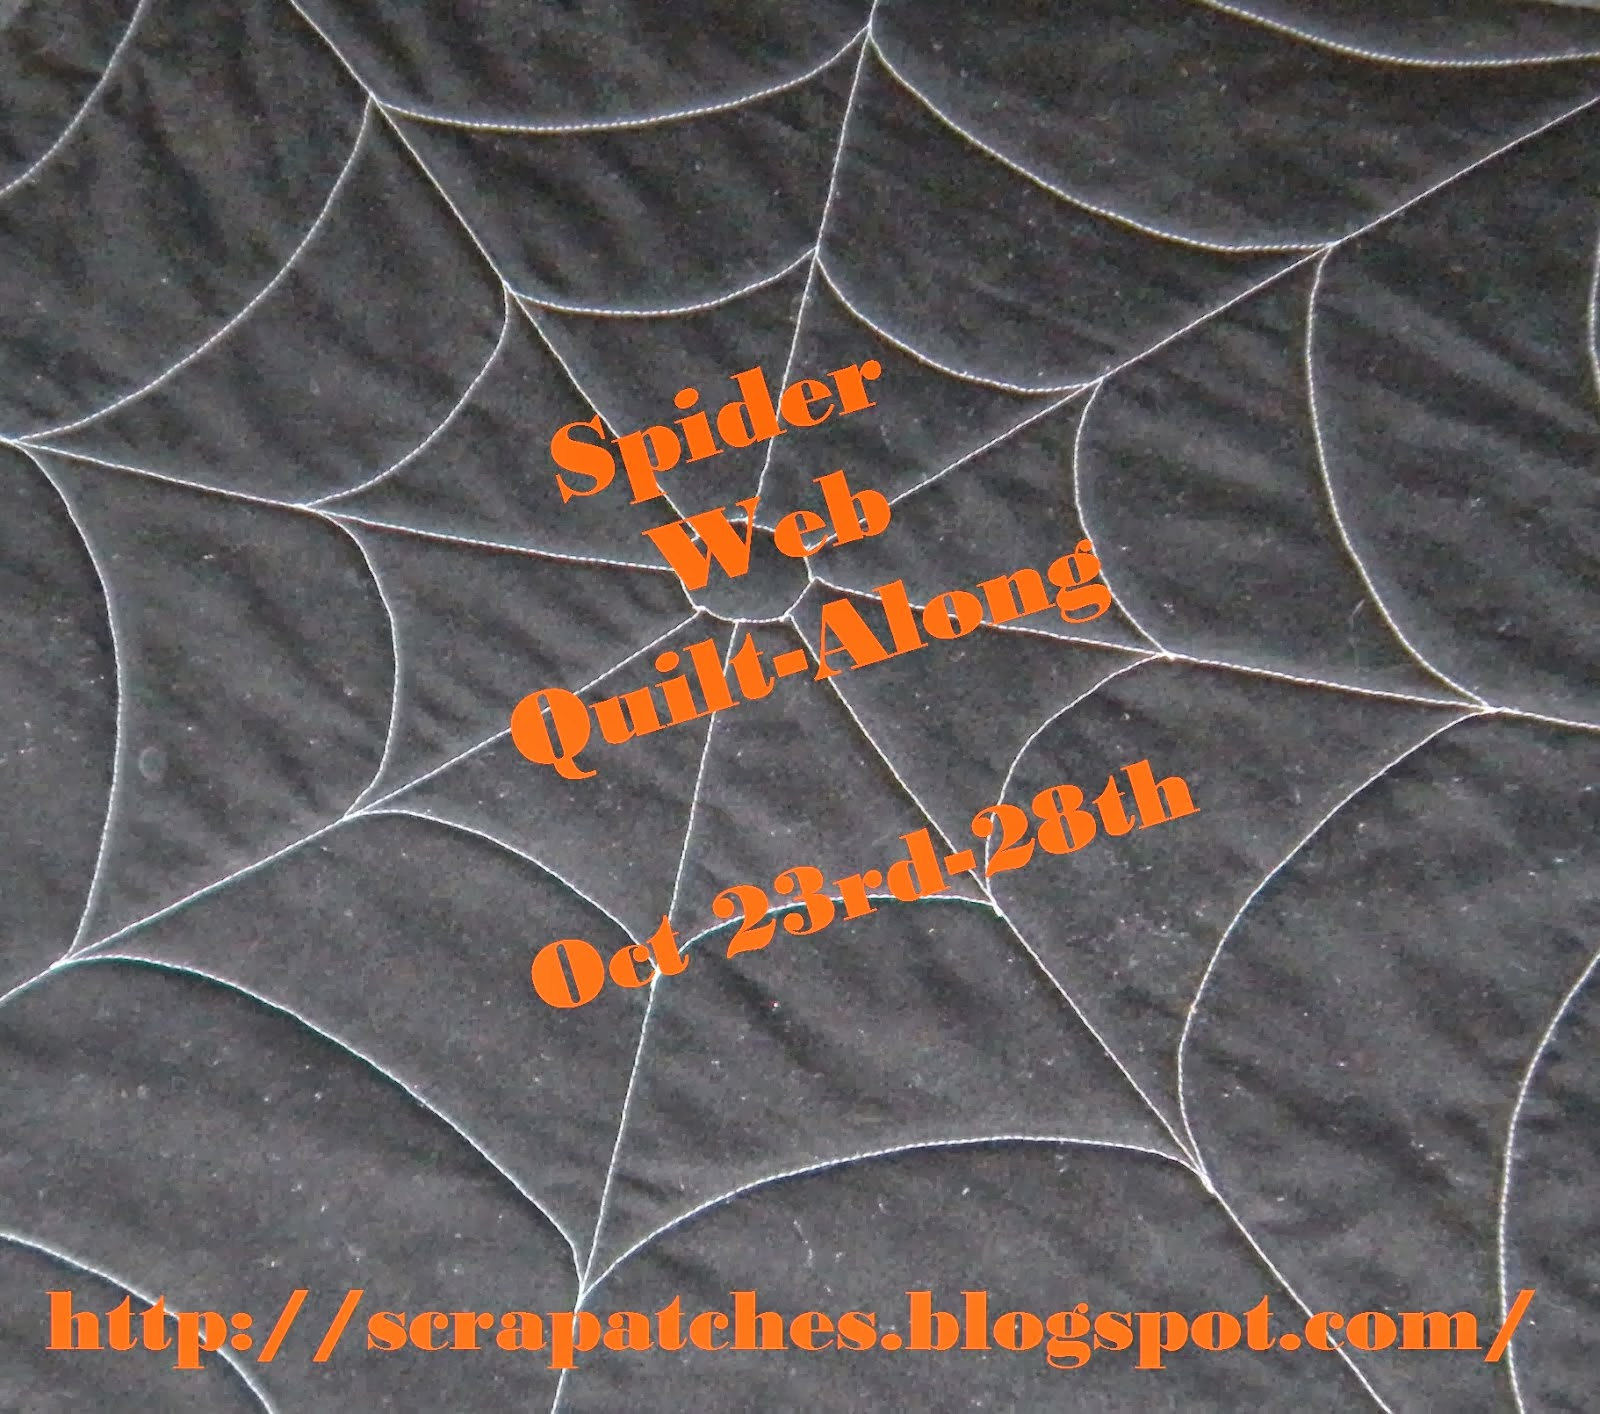 Spider Web Halloween Decorations: Life In The Scrapatch: Spider Web Quilt-Along